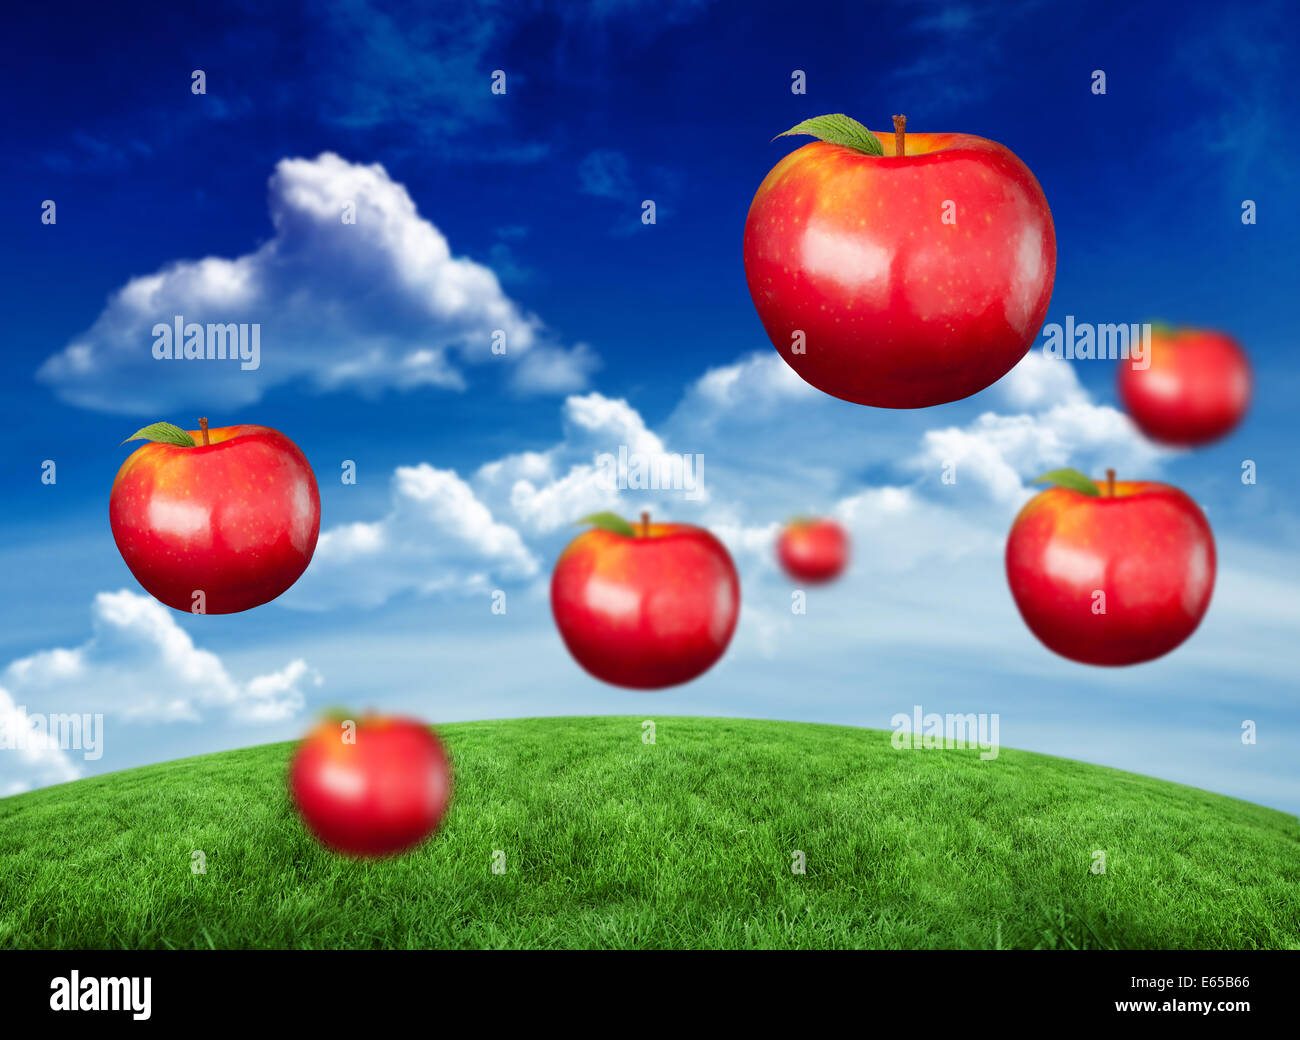 Composite image of digitally generated shiny red apples - Stock Image